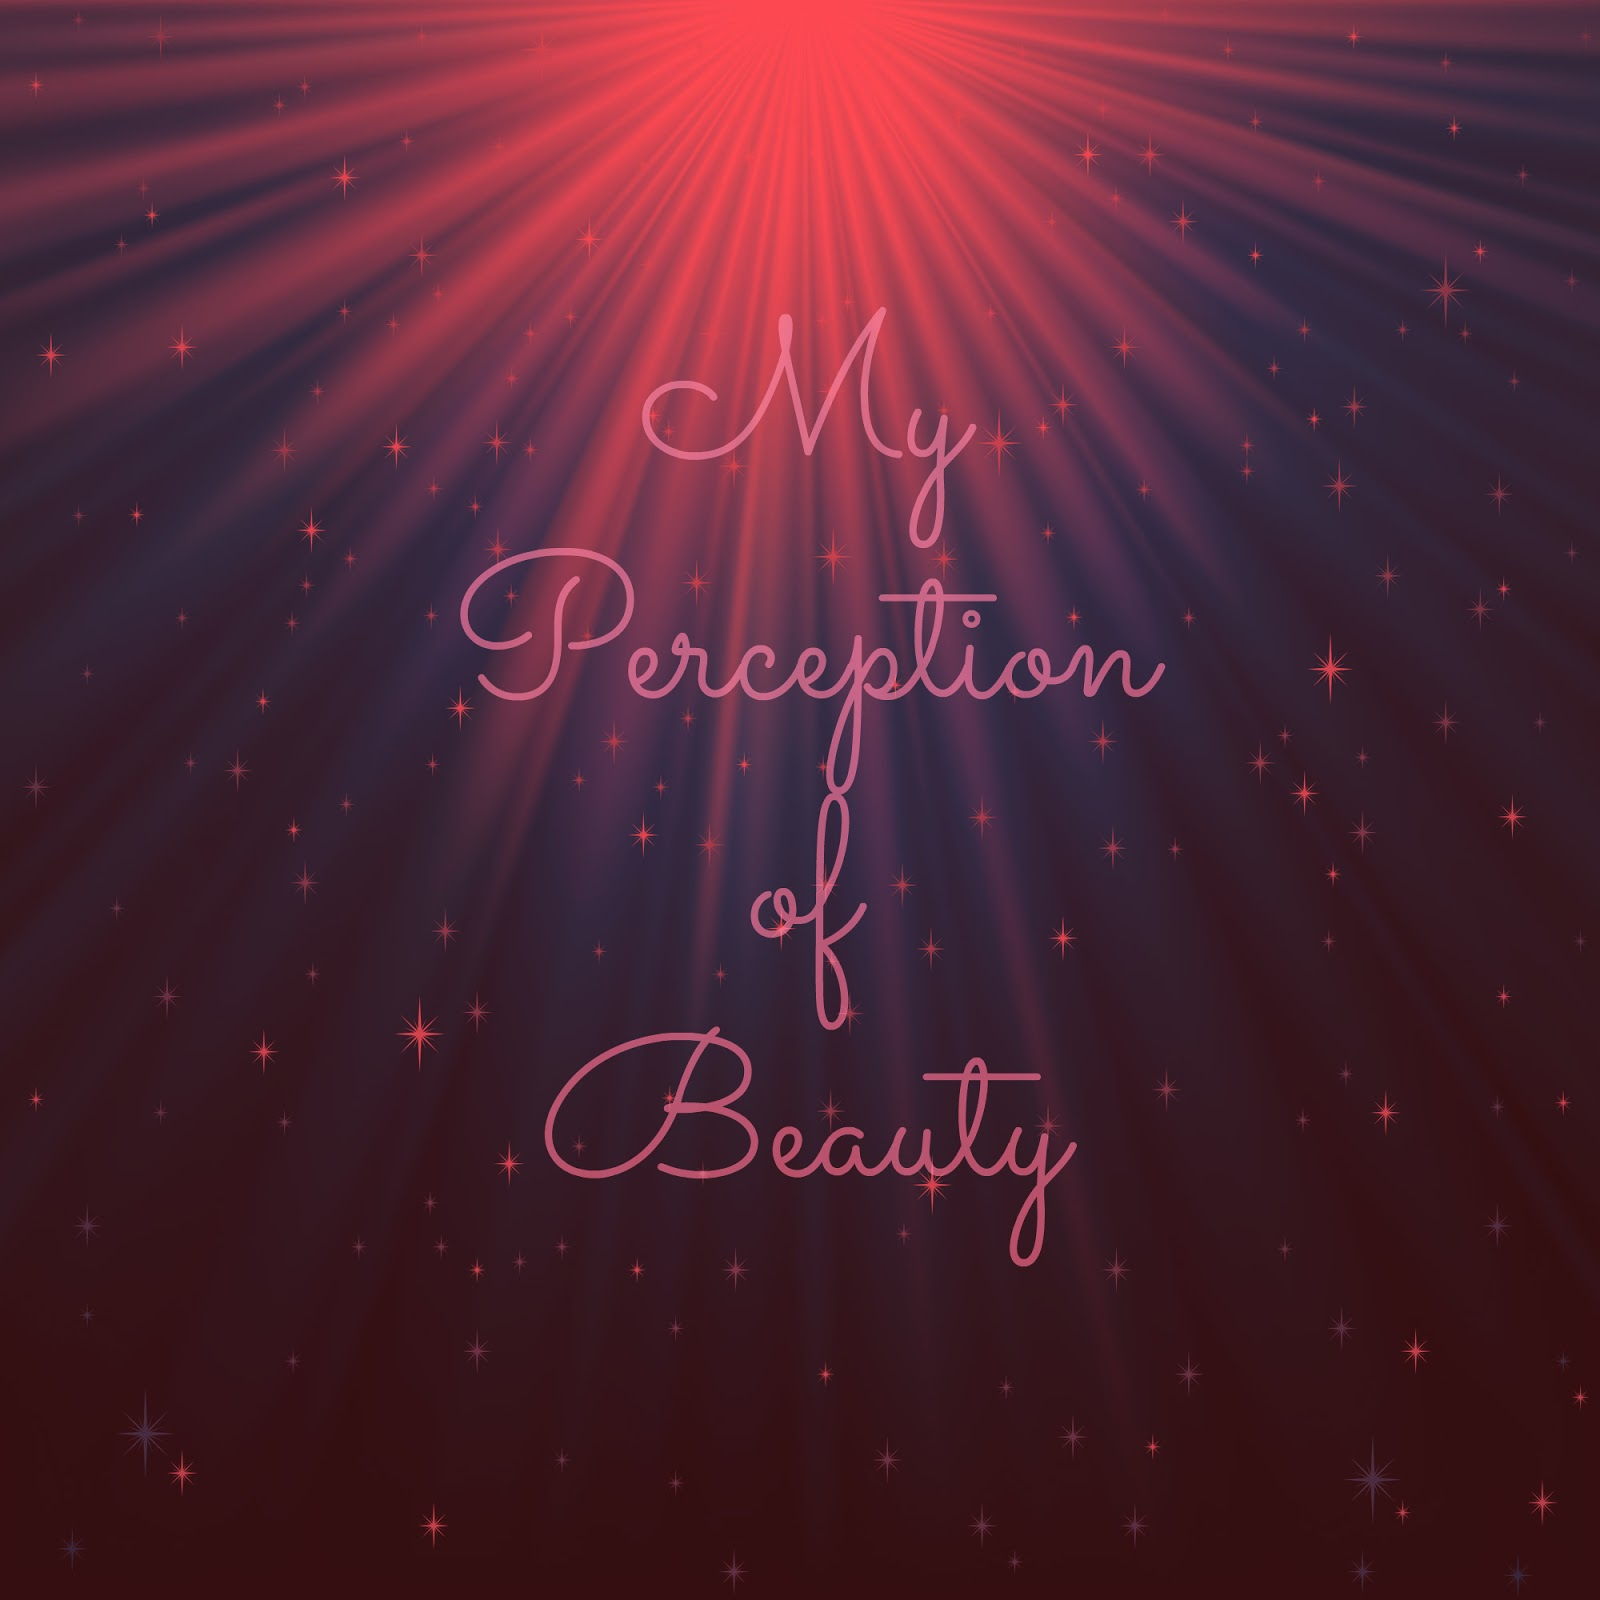 the perception of beauty c The perception of beauty created in the 80s (albeit calling any one size as perfect is a bit too shallow) was purposely changed to create a new perception of beauty for today from my perspective, this promotes eating disorders, self-esteem issues and a warped perception of perfection.